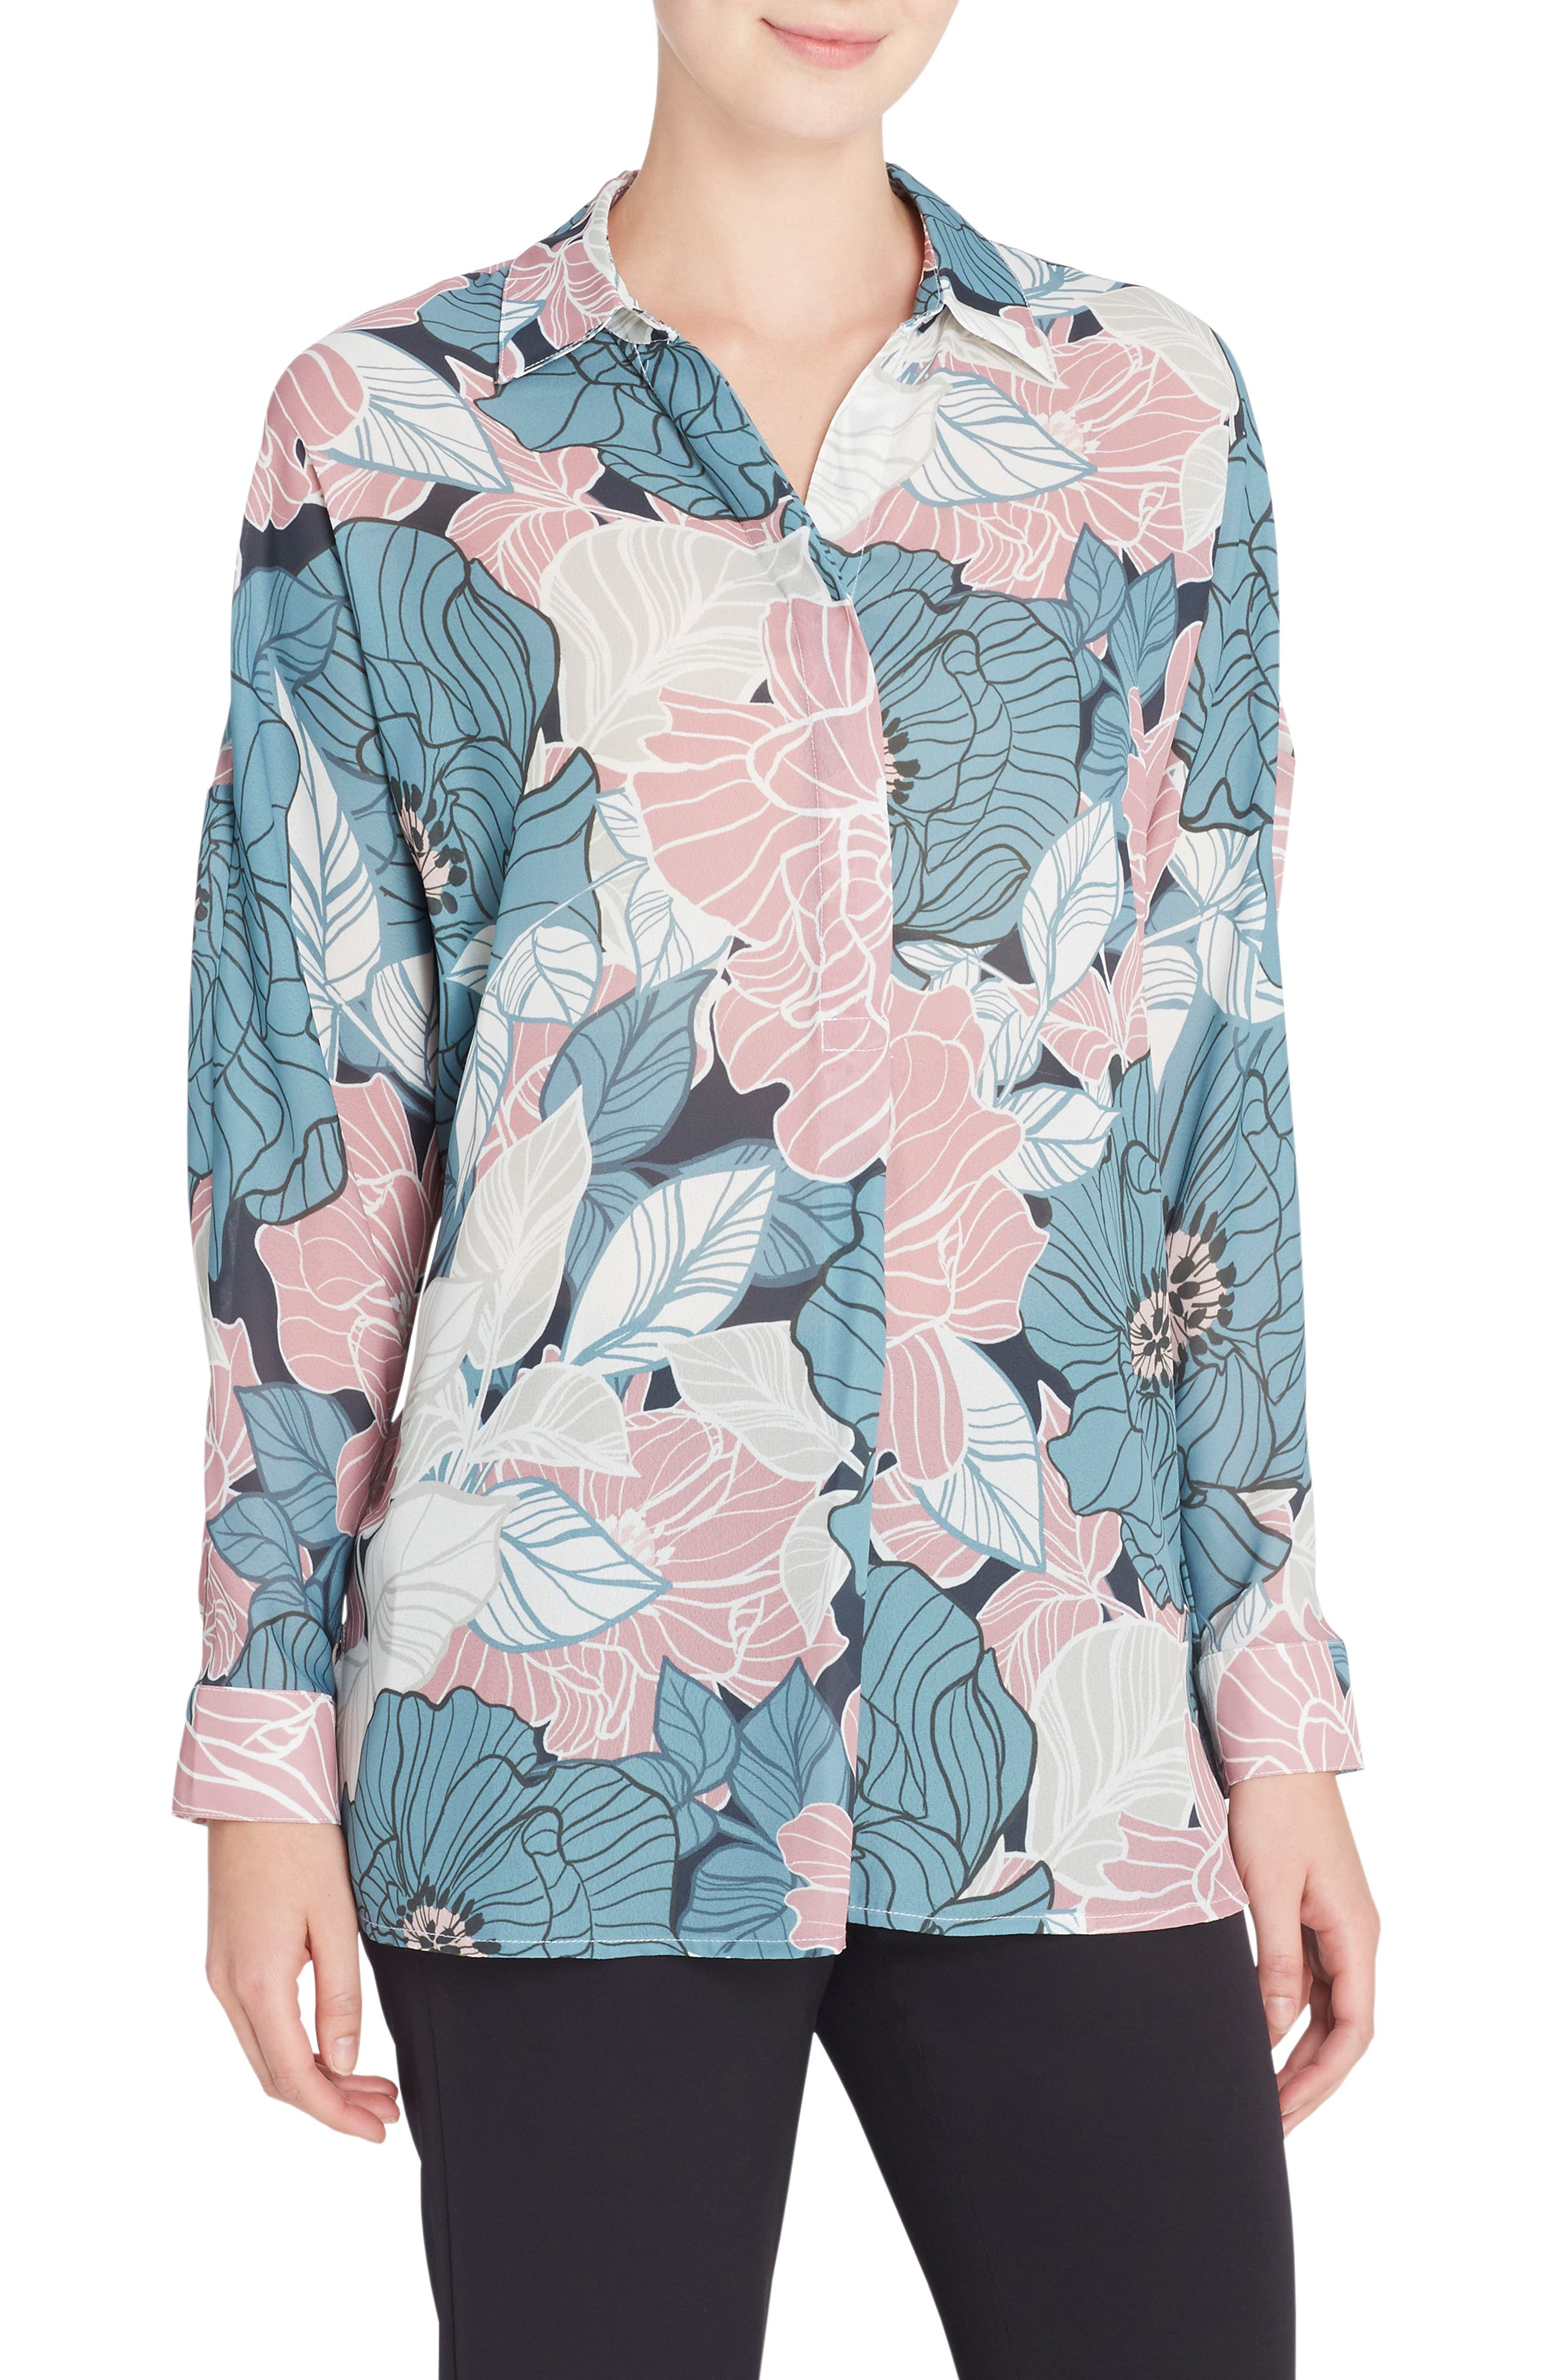 Jay Floral Blouse,                         Main,                         color, Sketchy Floral